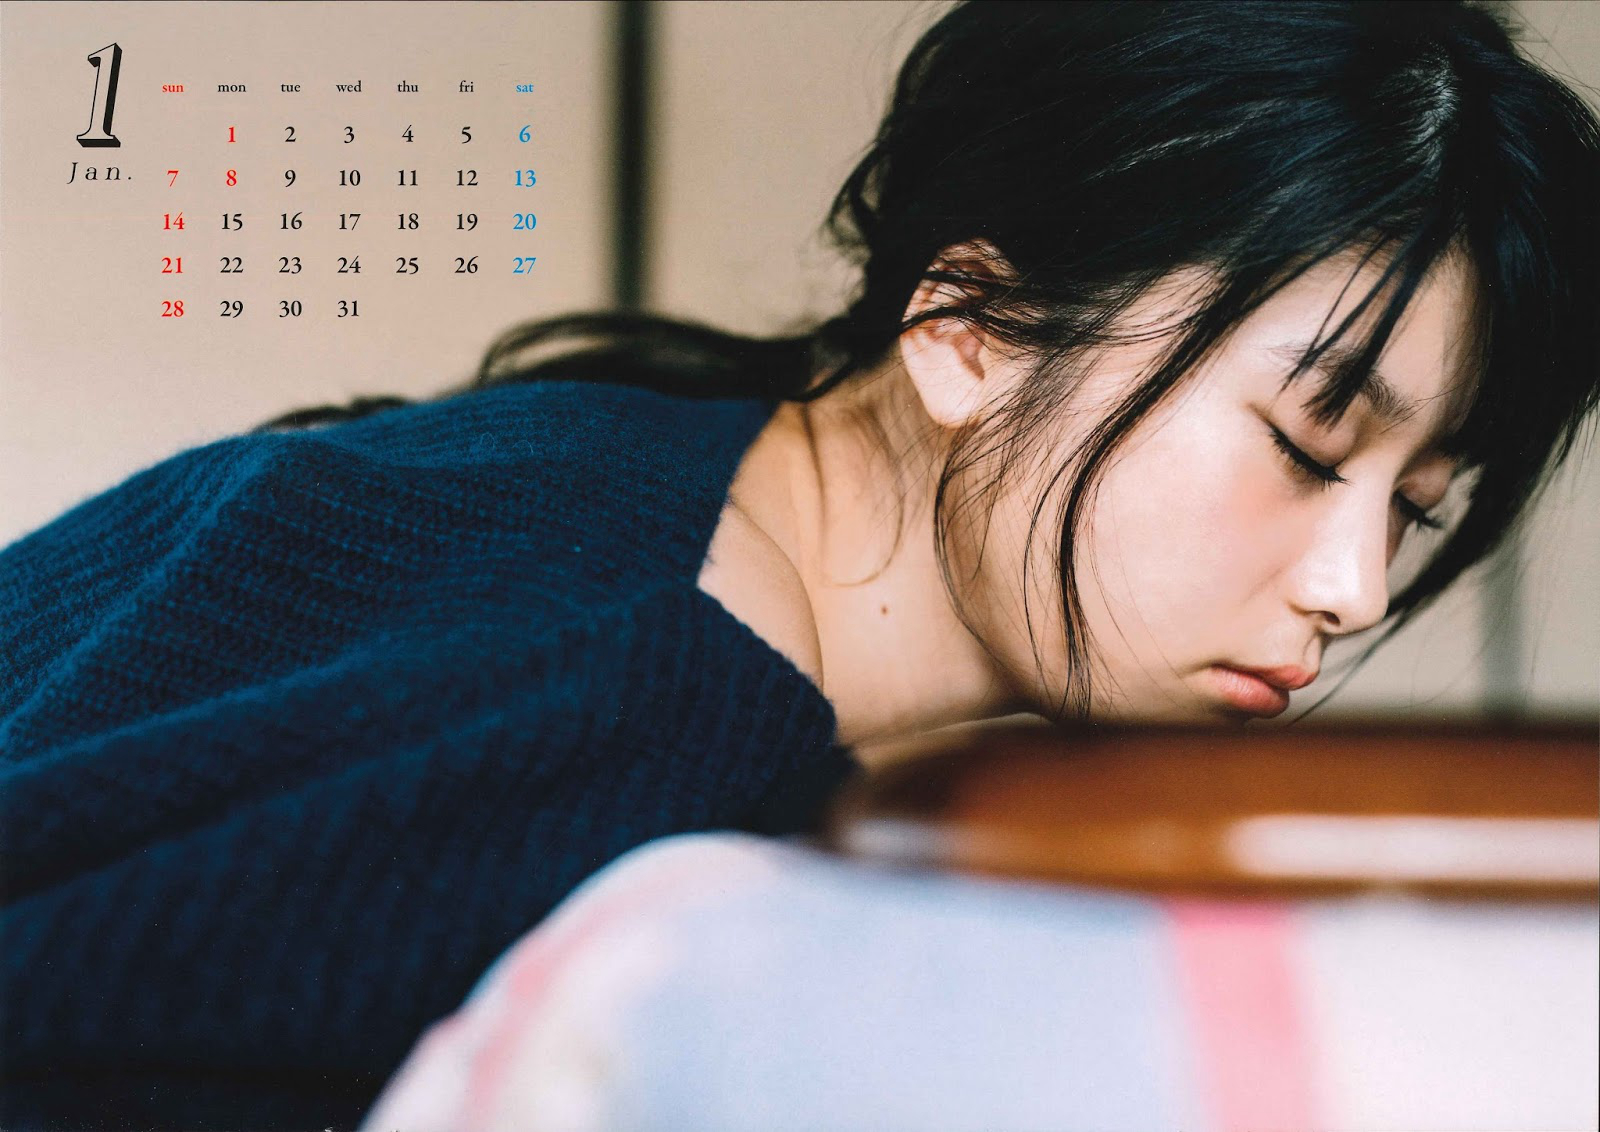 Fumika-CalendarBook-003.jpg